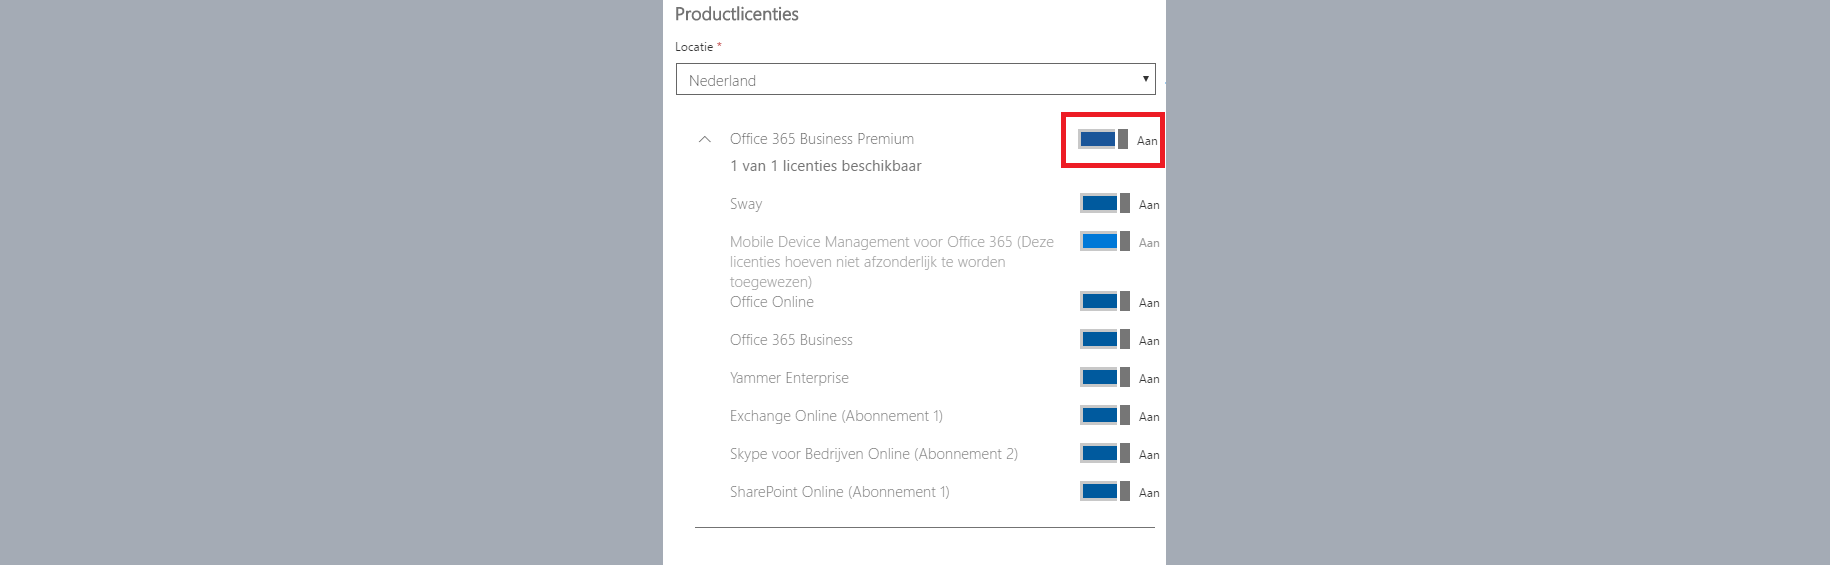 office 365 productlicenties aanzetten